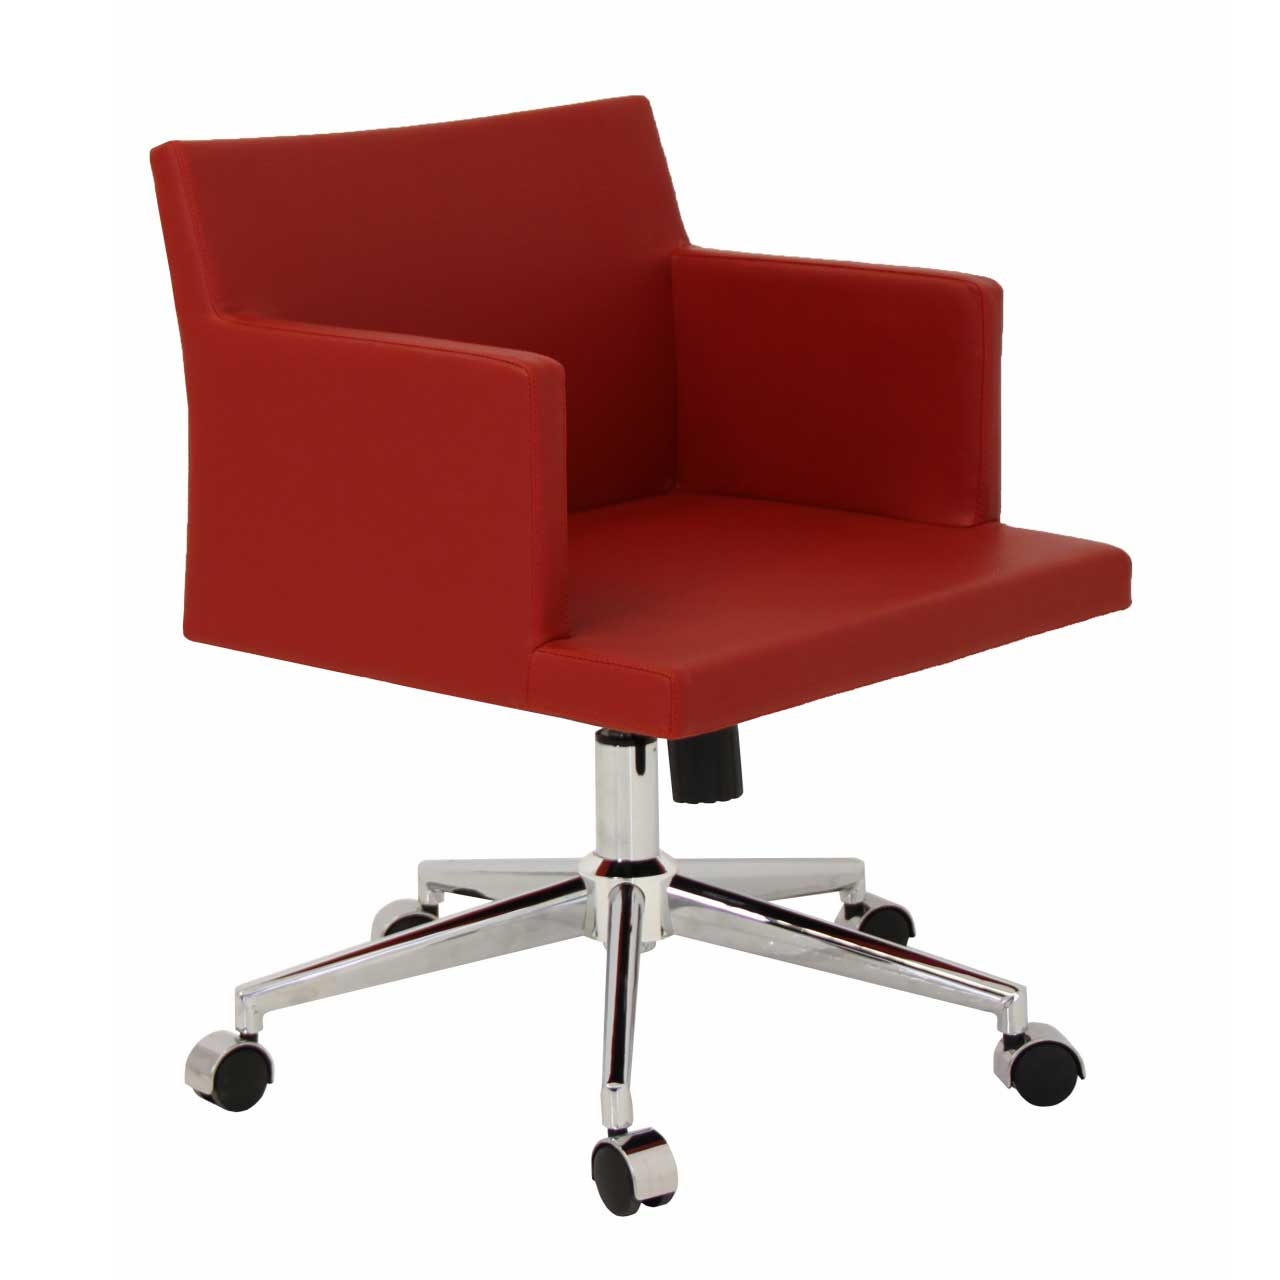 Stylish Chairs Big Office Chair For Your Office